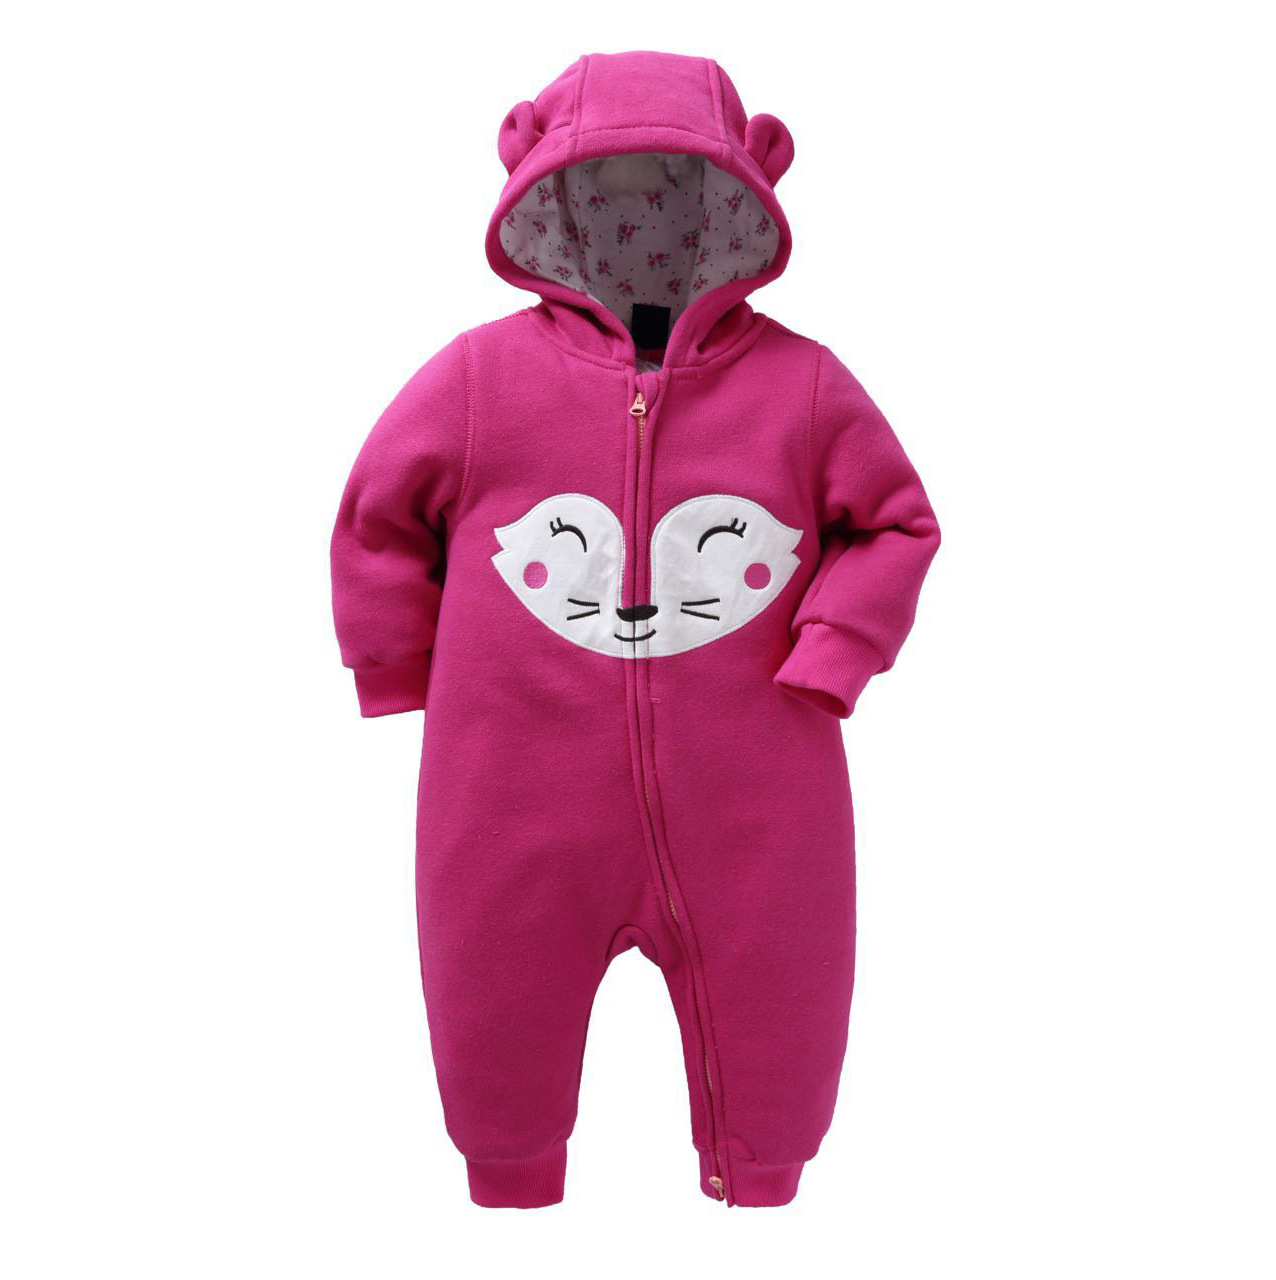 Lovely Cartoon Fox Baby Romper Newborn Children Kit Cotton Clothing Baby Girl Clothes Winter Hooded With Hat Infantil Jumpsuits<br><br>Aliexpress